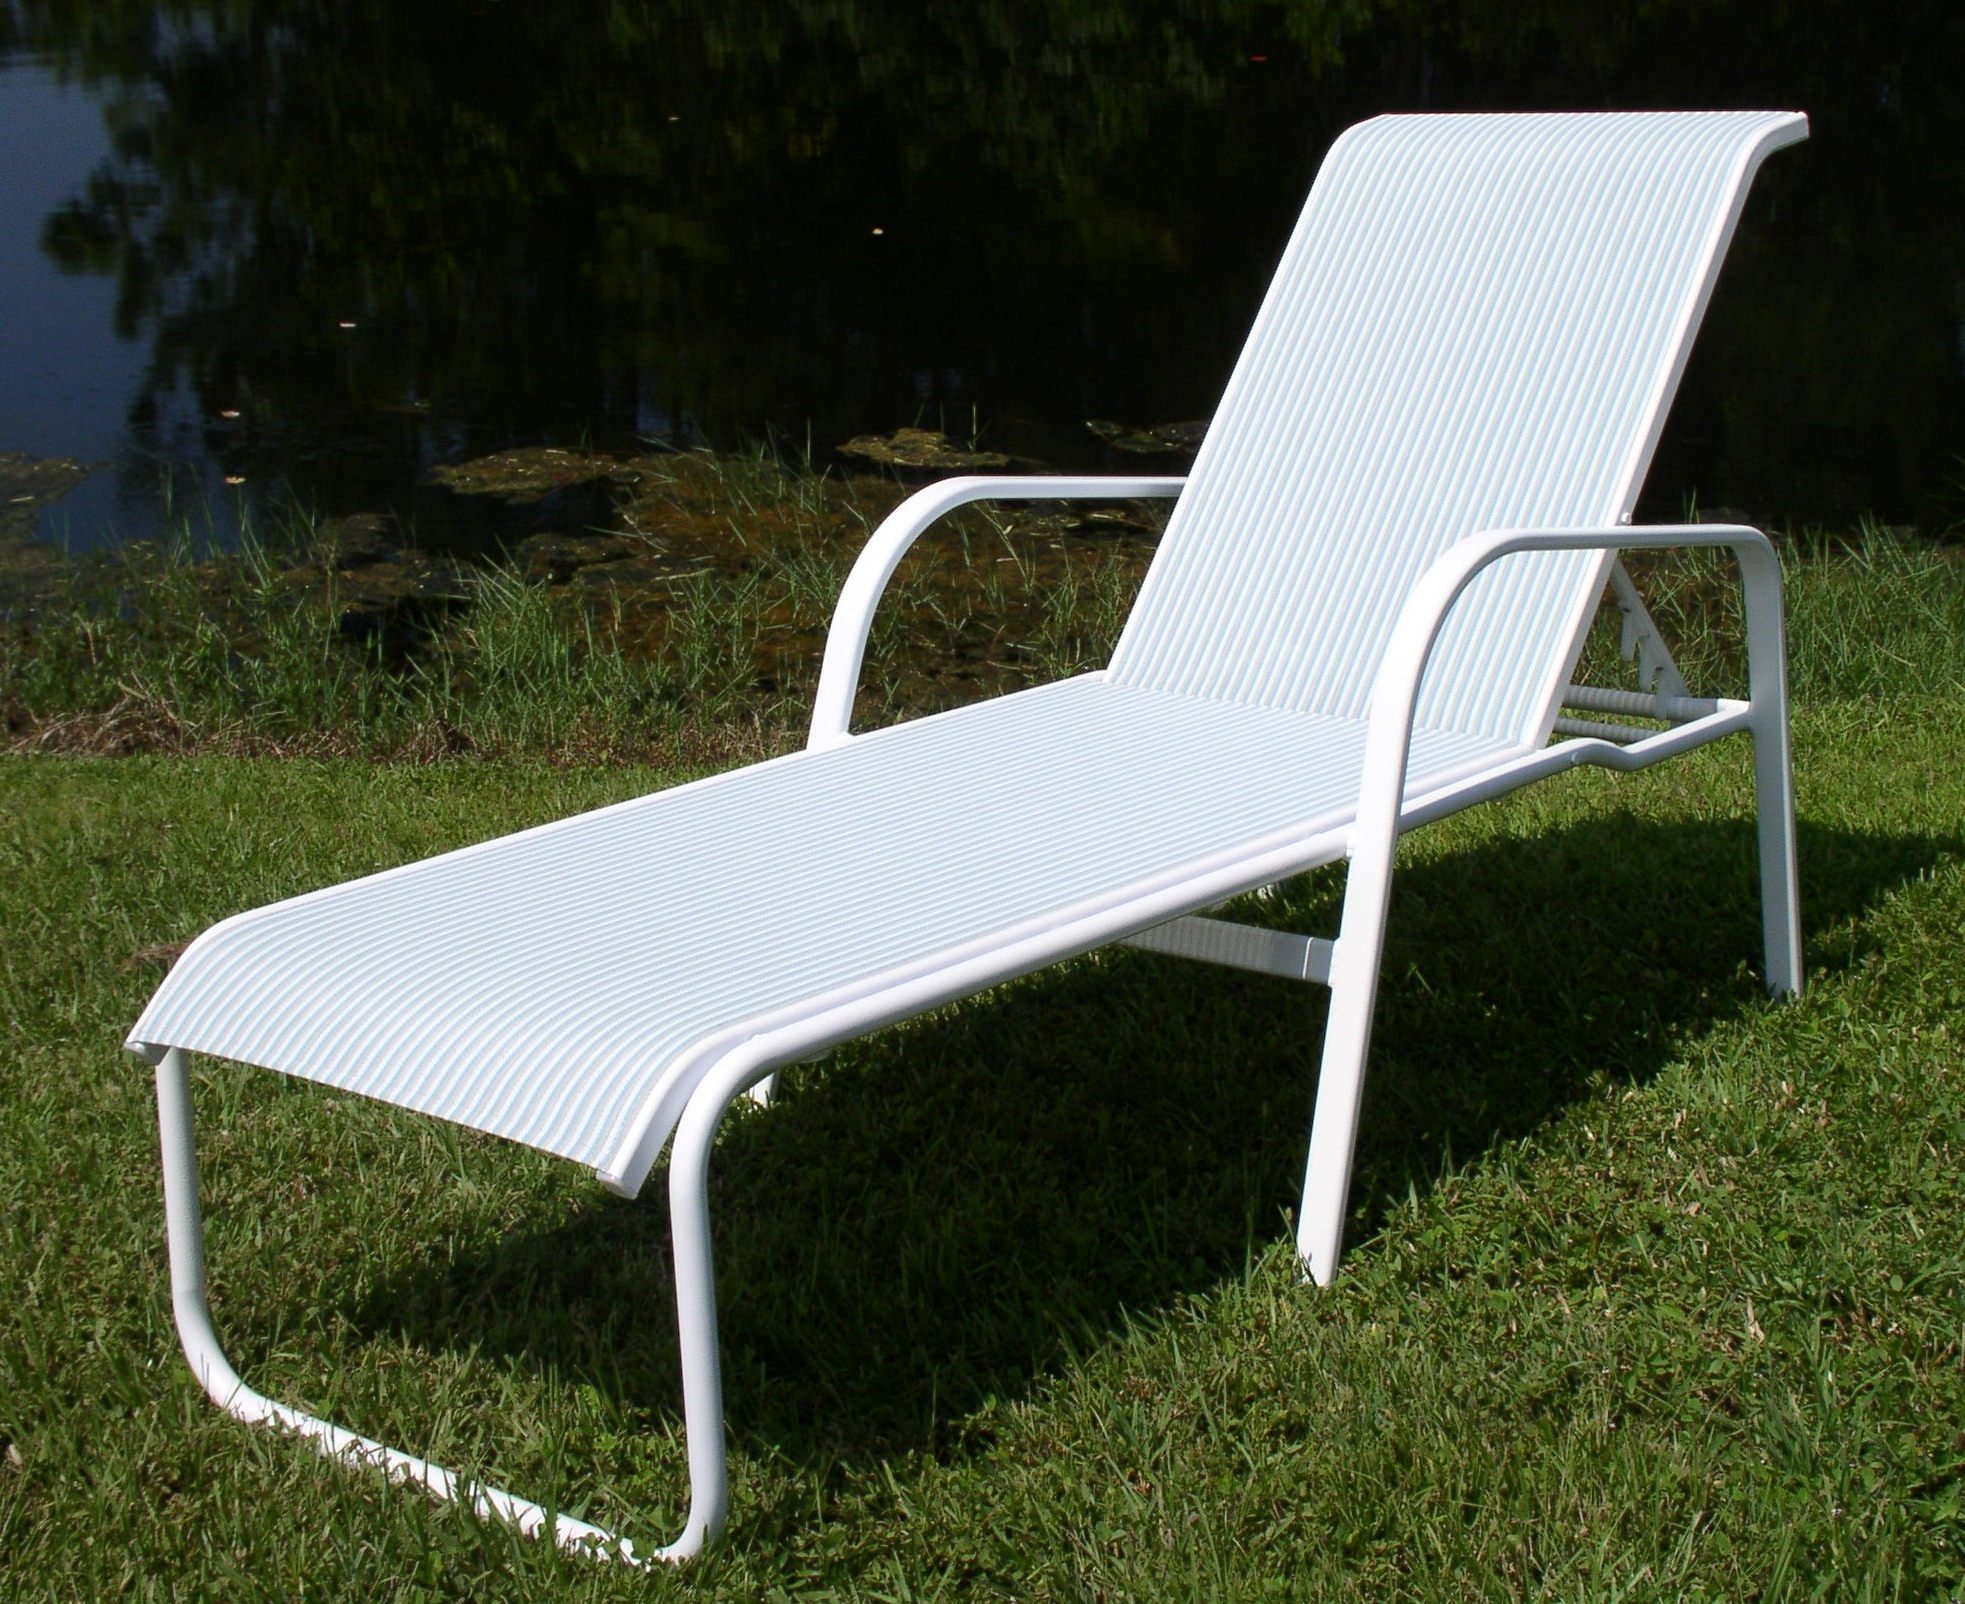 Favorite Lawn Furniture Lounge Chairs • Lounge Chairs Ideas Within Chaise Lounge Lawn Chairs (View 11 of 15)